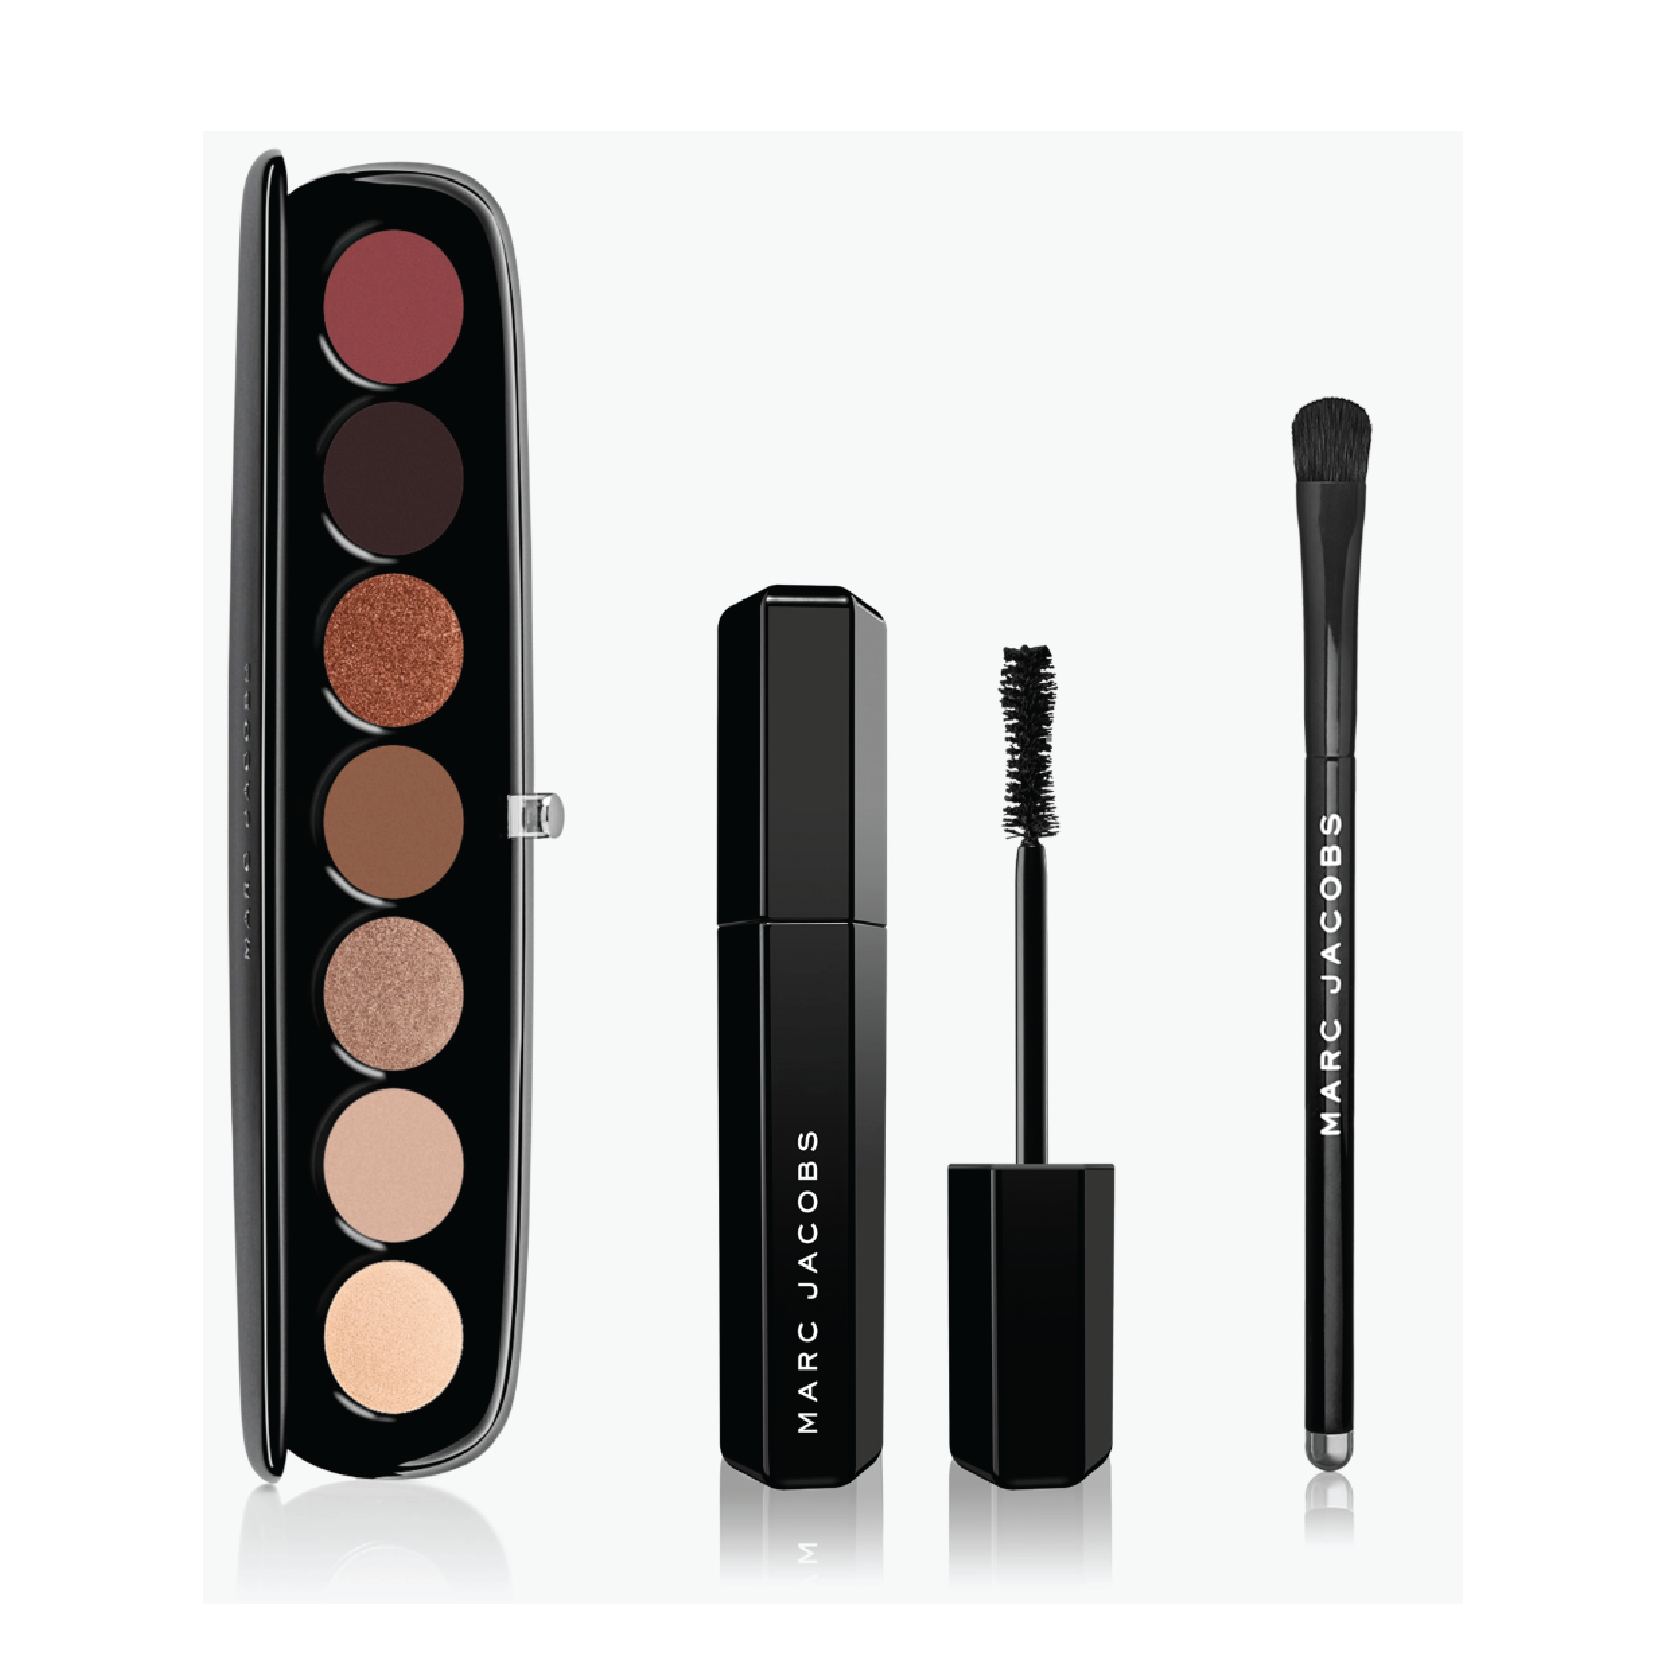 Marc Jacobs Beauty The Dressed Eye Set - On sale for $69 at Marc Jacobs BeautyThese shadow palettes are iconic and this is honestly a great price for three full-size luxe products. It also comes with one of my favorite everyday mascaras.